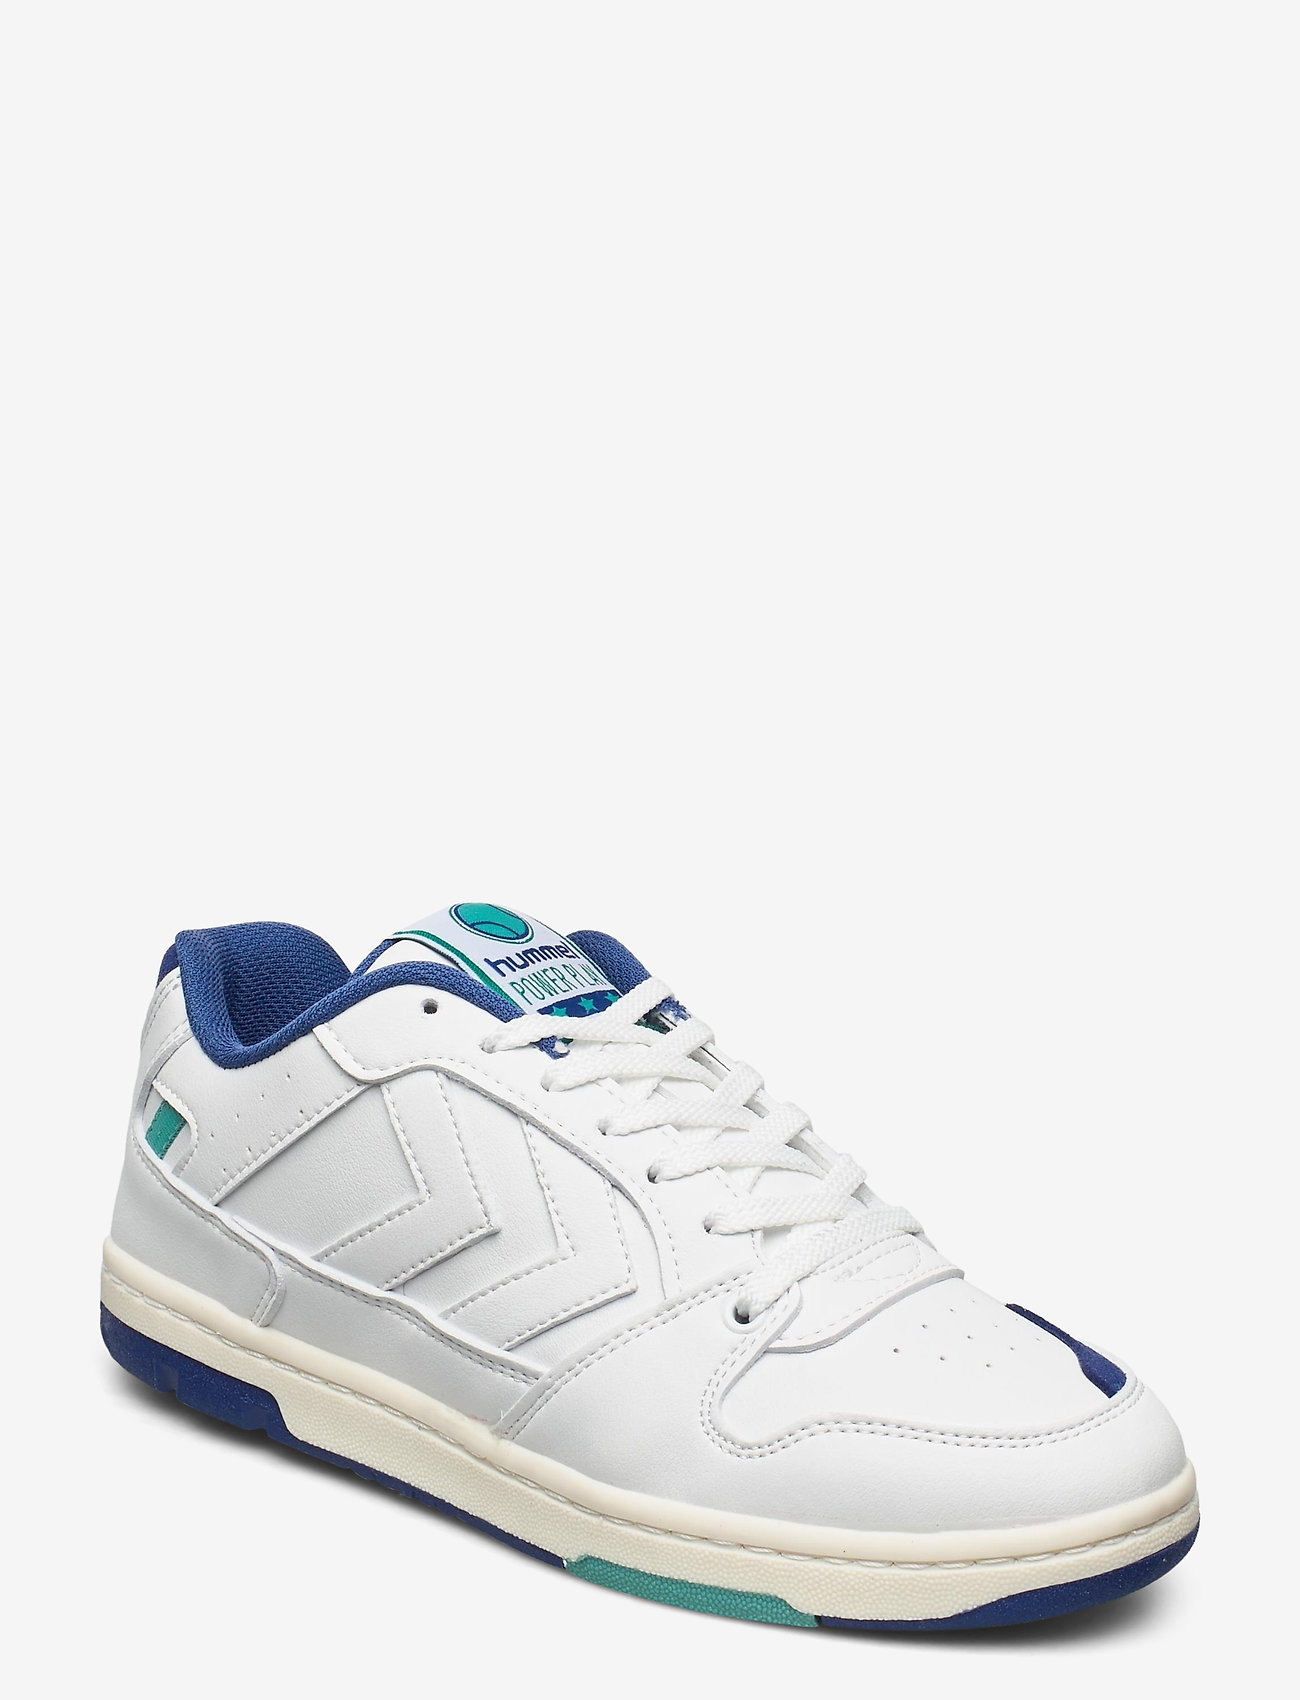 Hummel - POWER PLAY VEGAN ARCHIVE - laag sneakers - white/blue/green - 1